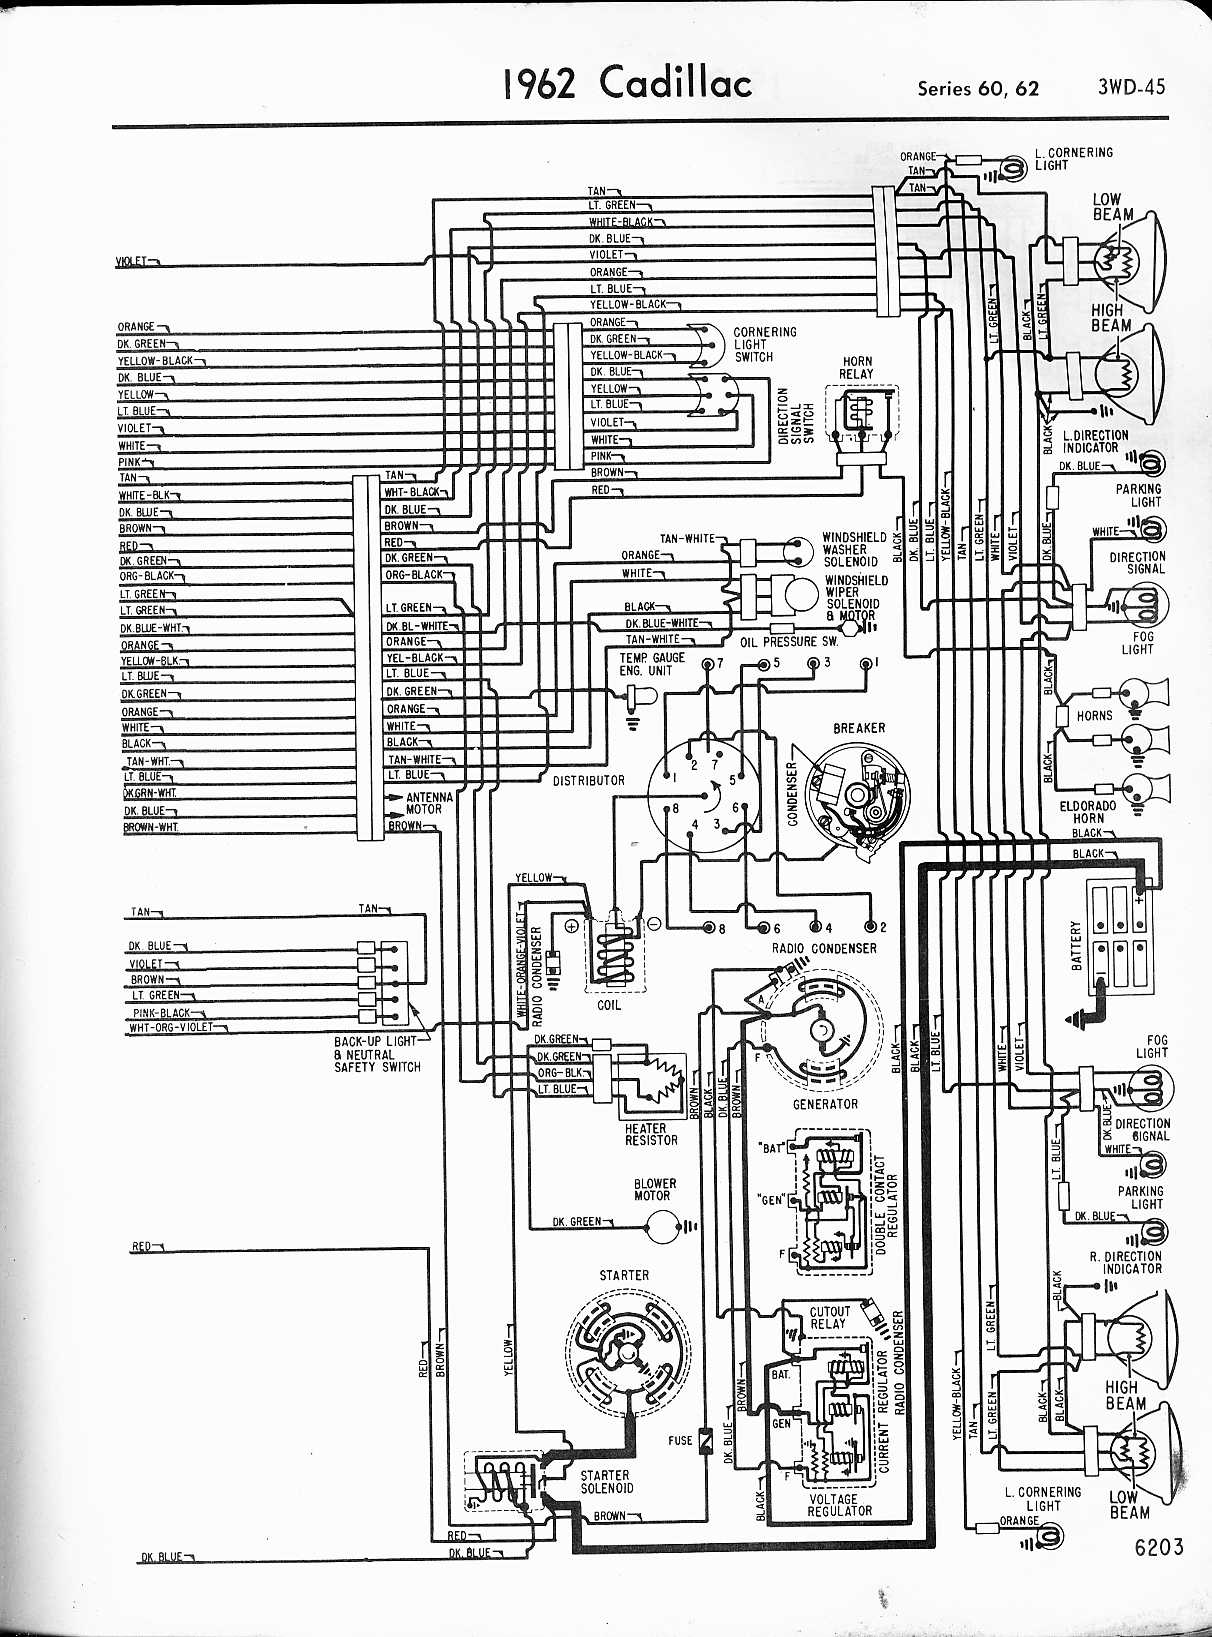 1962 Cadillac Headlight Switch Wiring Worksheet And Diagram Vw Diagrams 1957 1965 Rh Oldcarmanualproject Com Chevy